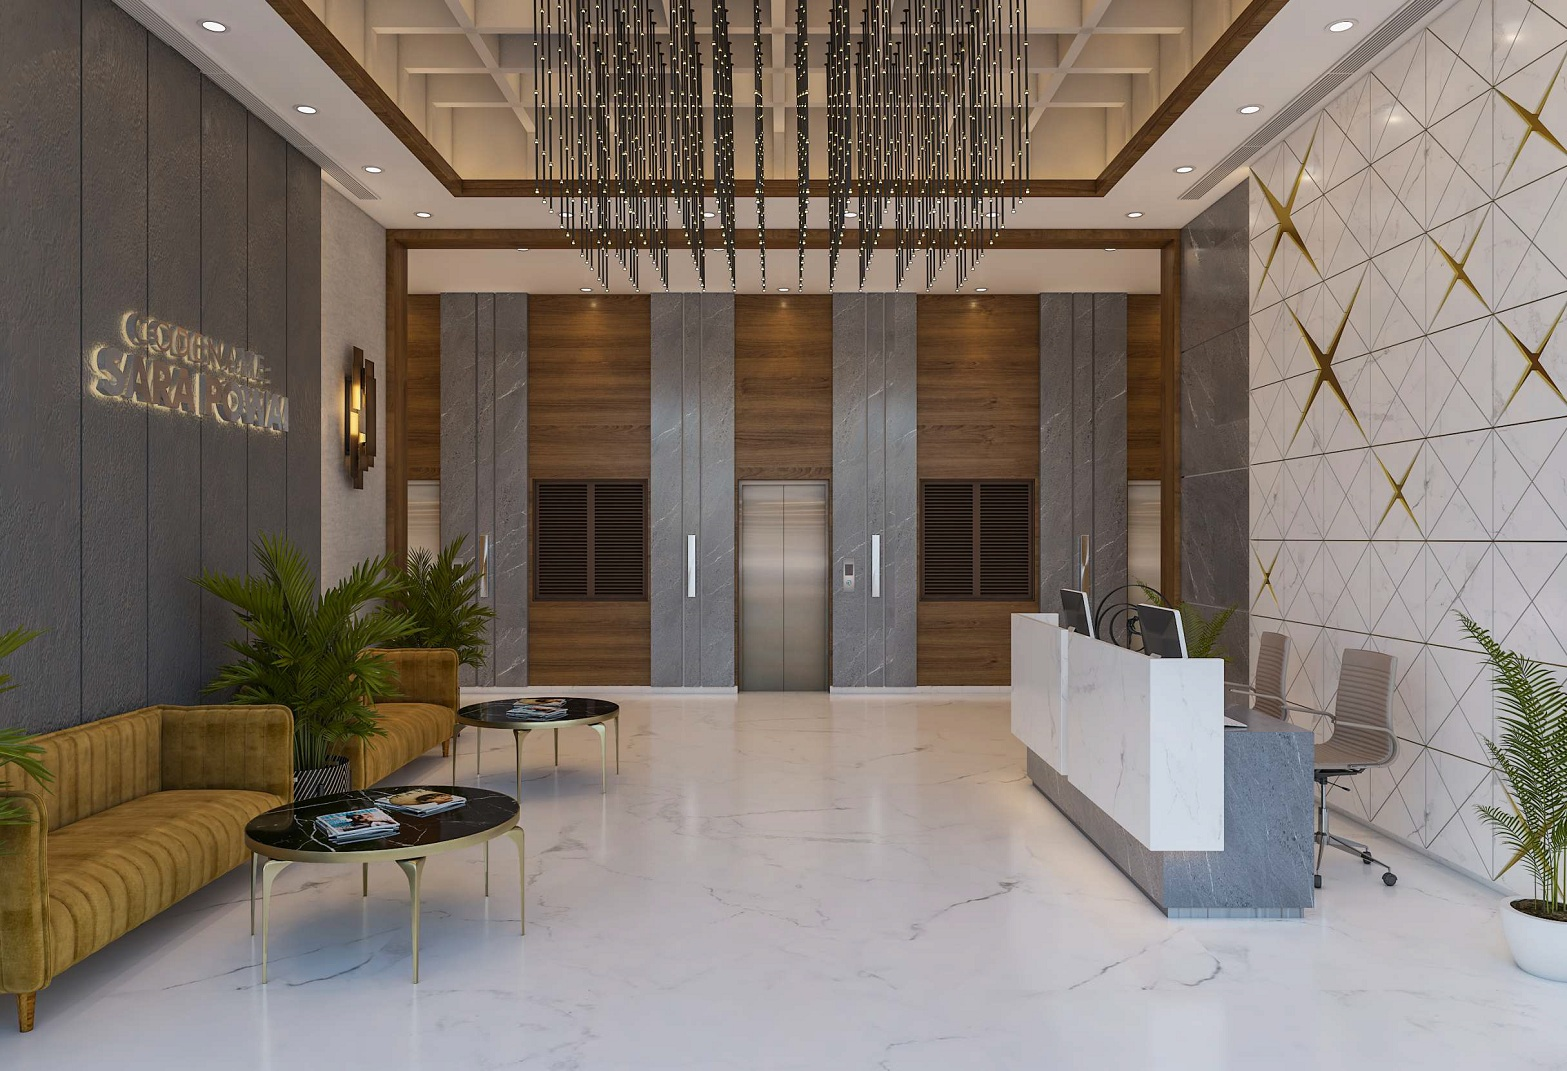 mayfair codename sara powai project lift lobby image1